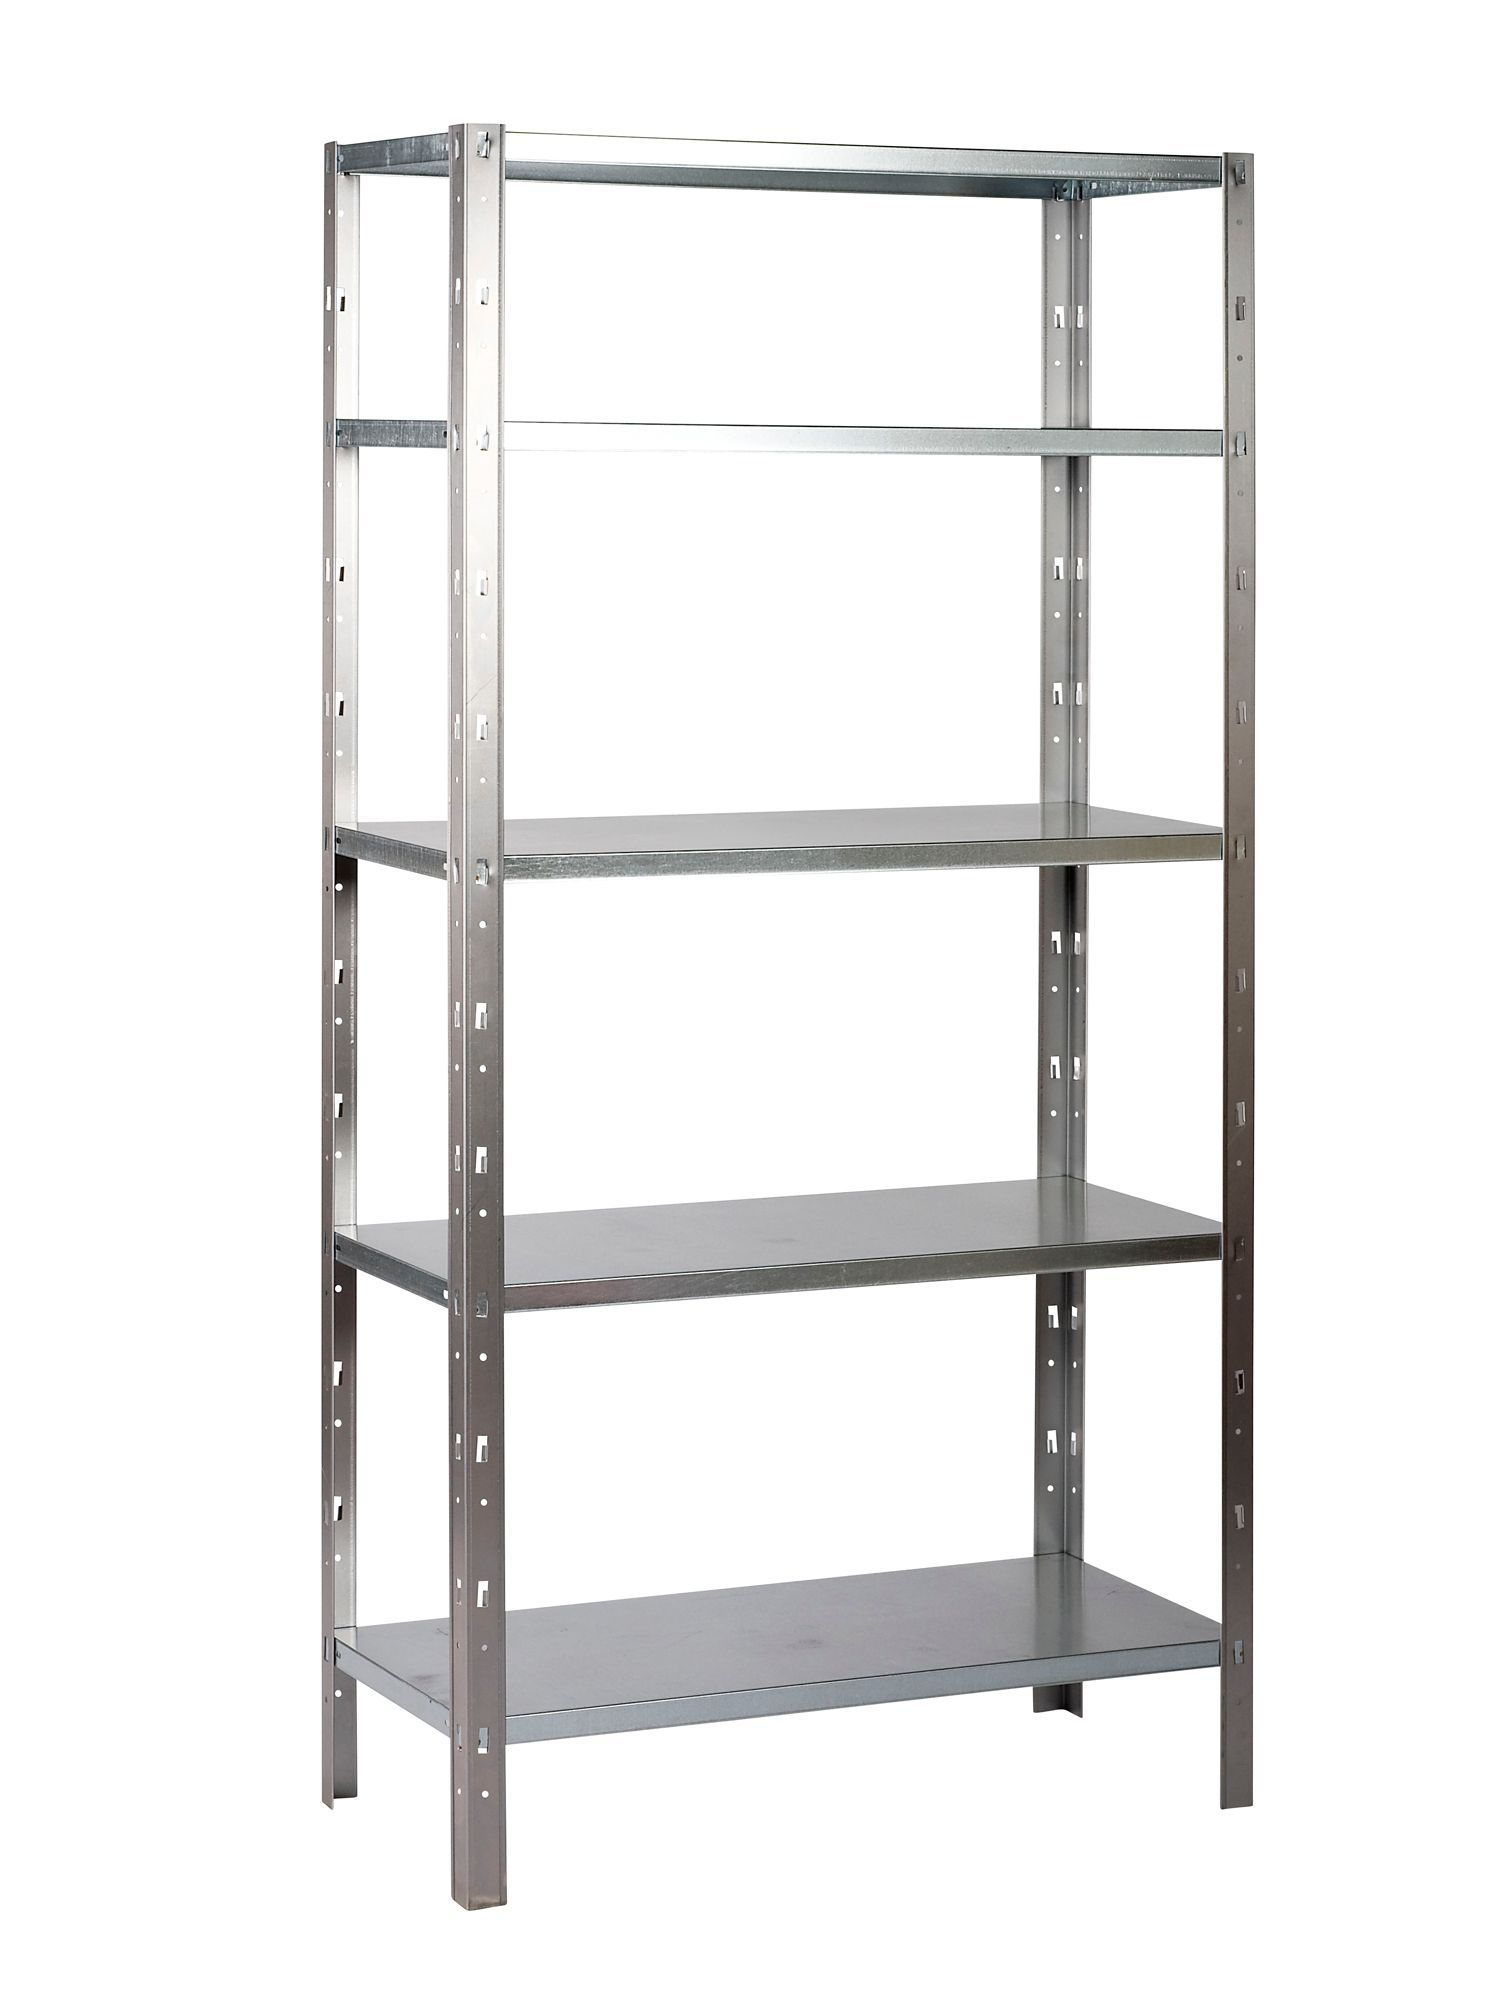 B Q 5 Shelf Steel Shelving Unit